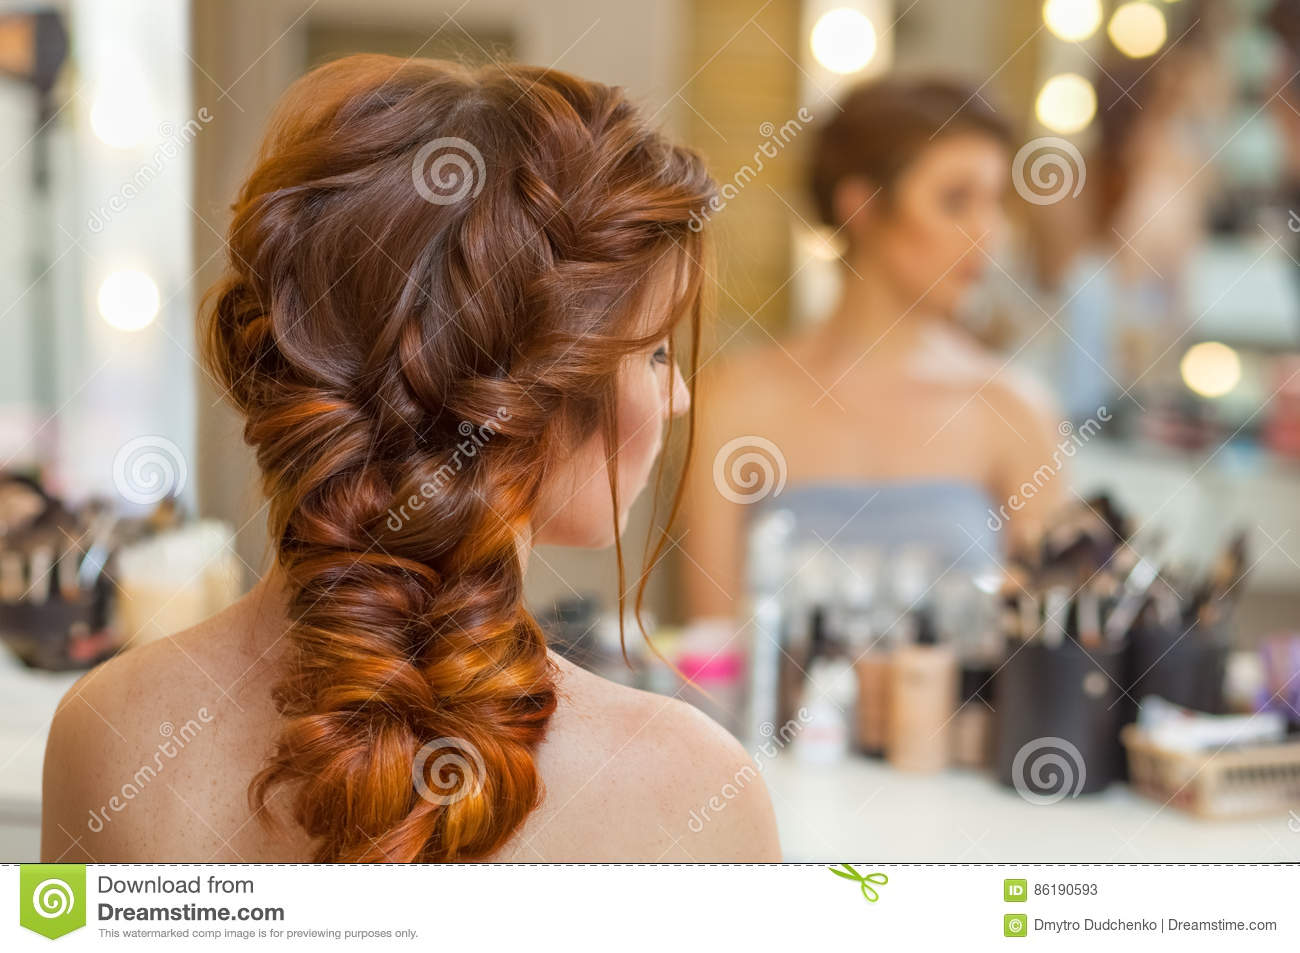 Beautiful, With Long, Red-Haired Hairy Girl, Hairdresser Weaves A French Braid, In A -1414